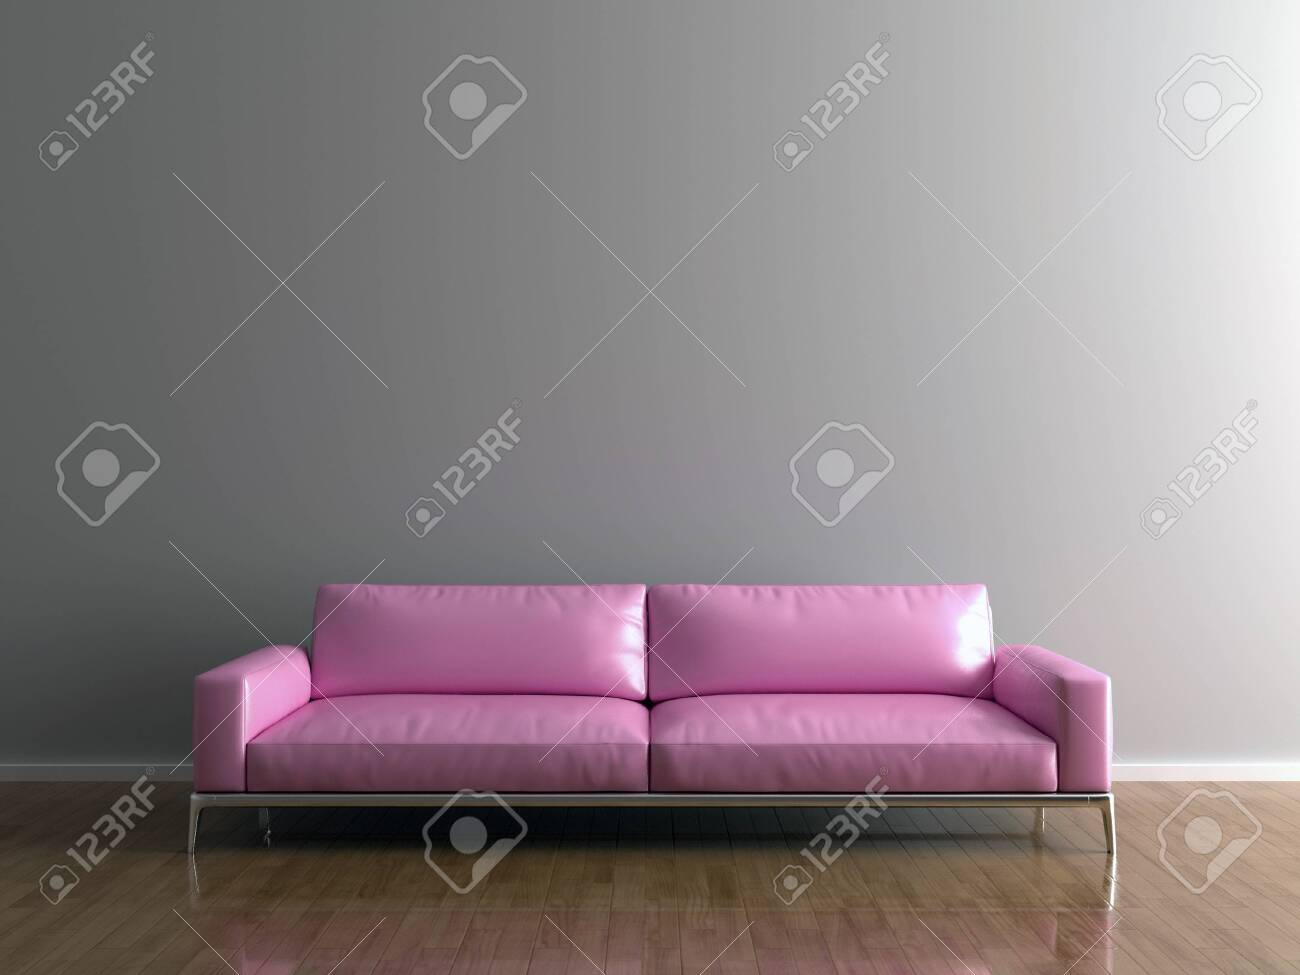 Picture of: Wall Bed And Chair Modern Mid Century Bedside Table And White Bed On Black And Gray Wall Background Fotos Retratos Imagenes Y Fotografia De Archivo Libres De Derecho Image 142555328